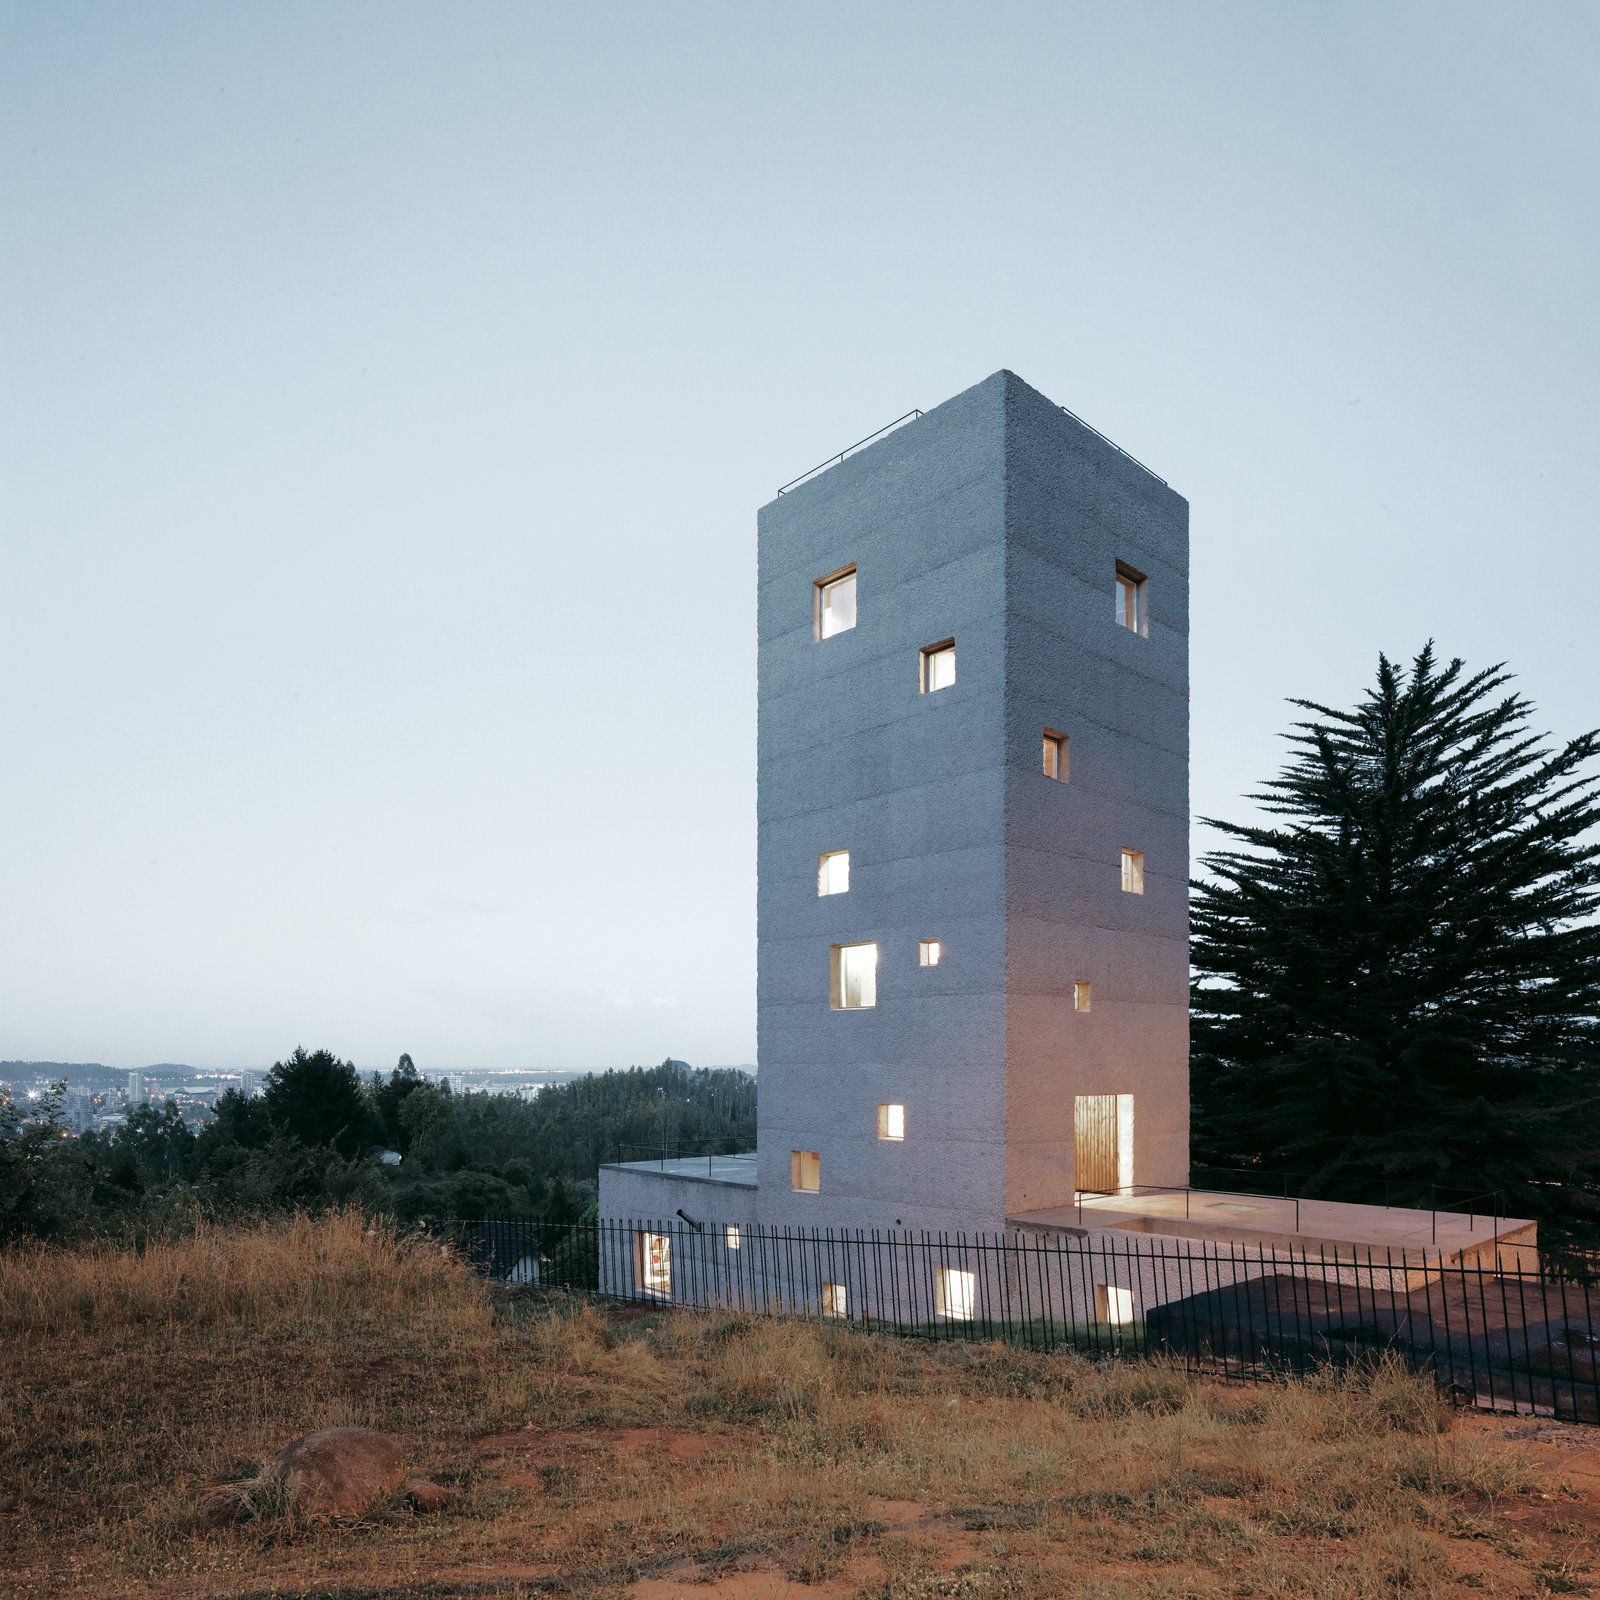 Sofia von Ellrichshausen and Mauricio Pezo's reinforced concrete home in Chile stacks rooms for working in a vertical column atop horizontally-oriented spaces for living.  Photo 6 of 8 in Design Tips for Privacy